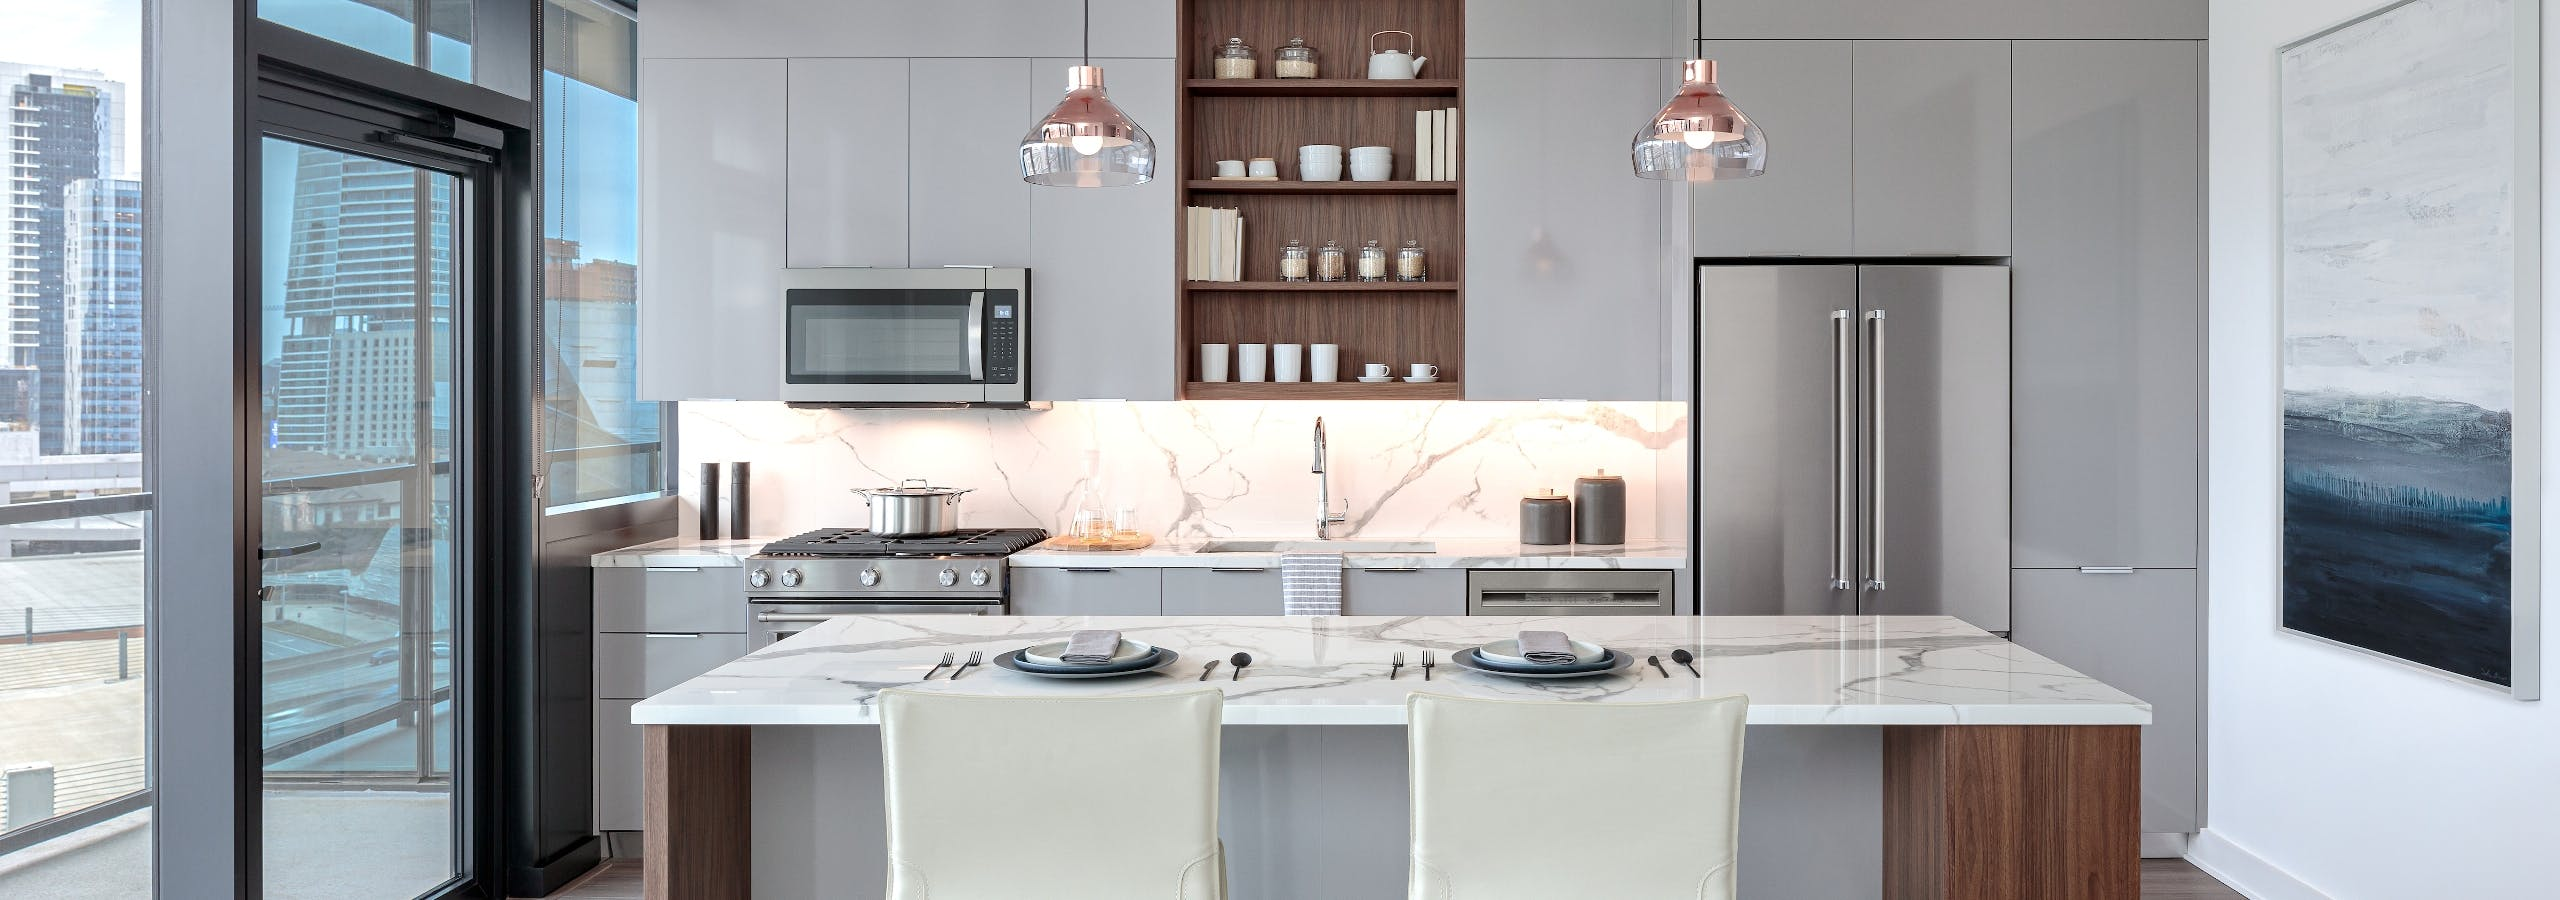 Island kitchen with stainless steel appliances, pendant lights & scenic balcony